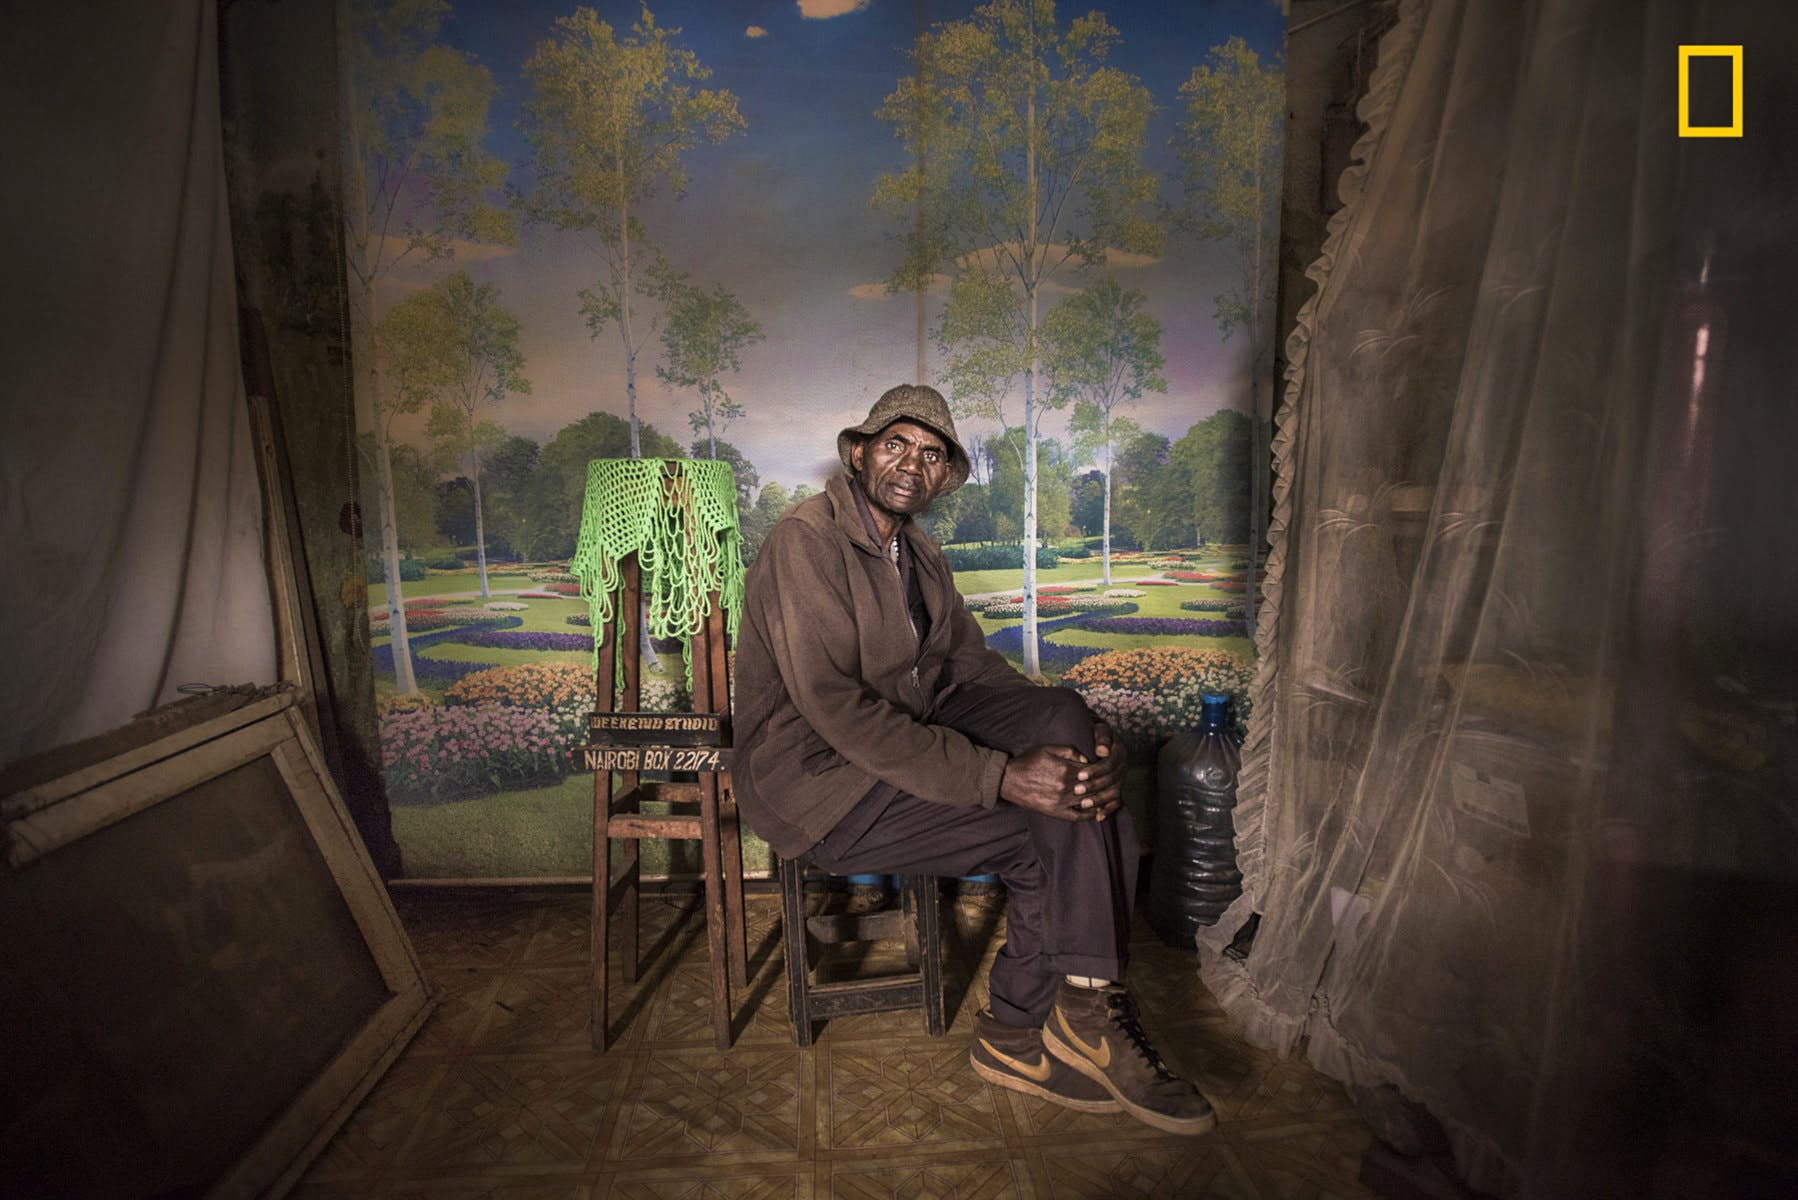 This shot by Mia Collins won the first place in the People category. It was taken in Nairobi, Kenya, and its subject, David Muyochokera, is sitting in his photo studio in his best clothes. Image courtesy of Mia Collins/2018 National Geographic Photo Contest